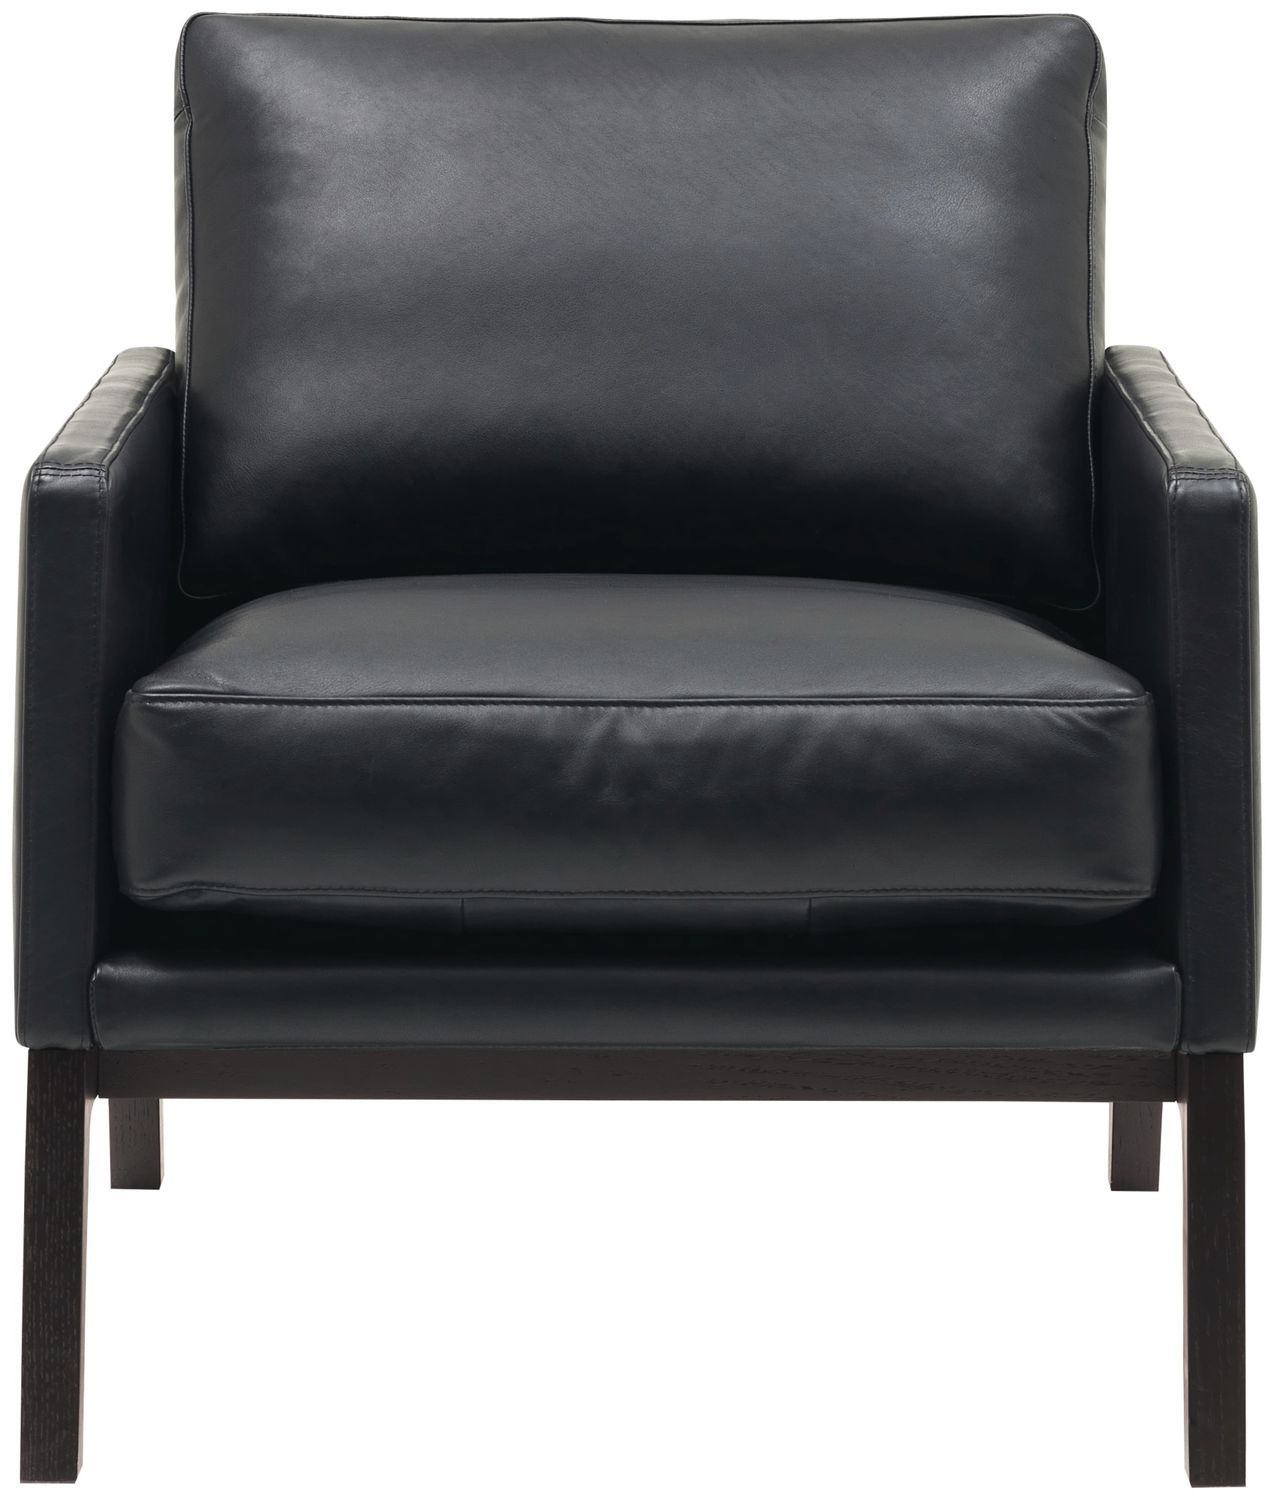 Contemporary Armchair / Wooden / Fabric / Leather MONTE BoConcept ...